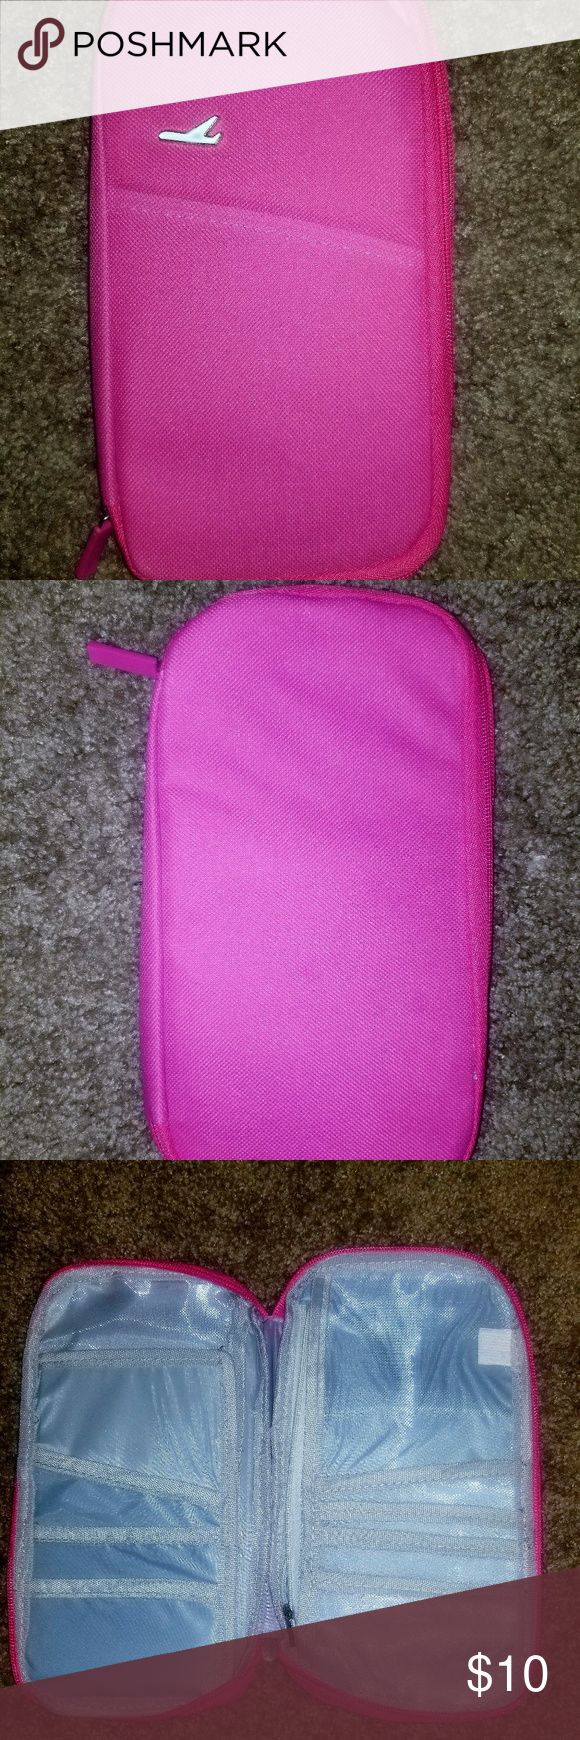 Ticket Holder/Organizer/(Airport) Color: Pink Ticket Holder/Organizer  Condition: Unused  Great way to organize and have immediate access to your ticket, credit cards, ID, and misc papers/reciepts when traveling. Inside this holder has a lot of needed pockets inserts and a pocket on the outside that can hold a mobile phone.    I have one and use it everytime I travel. It's really handy to have everything you need in your hands. It  can also be used as a wallet. Other Other